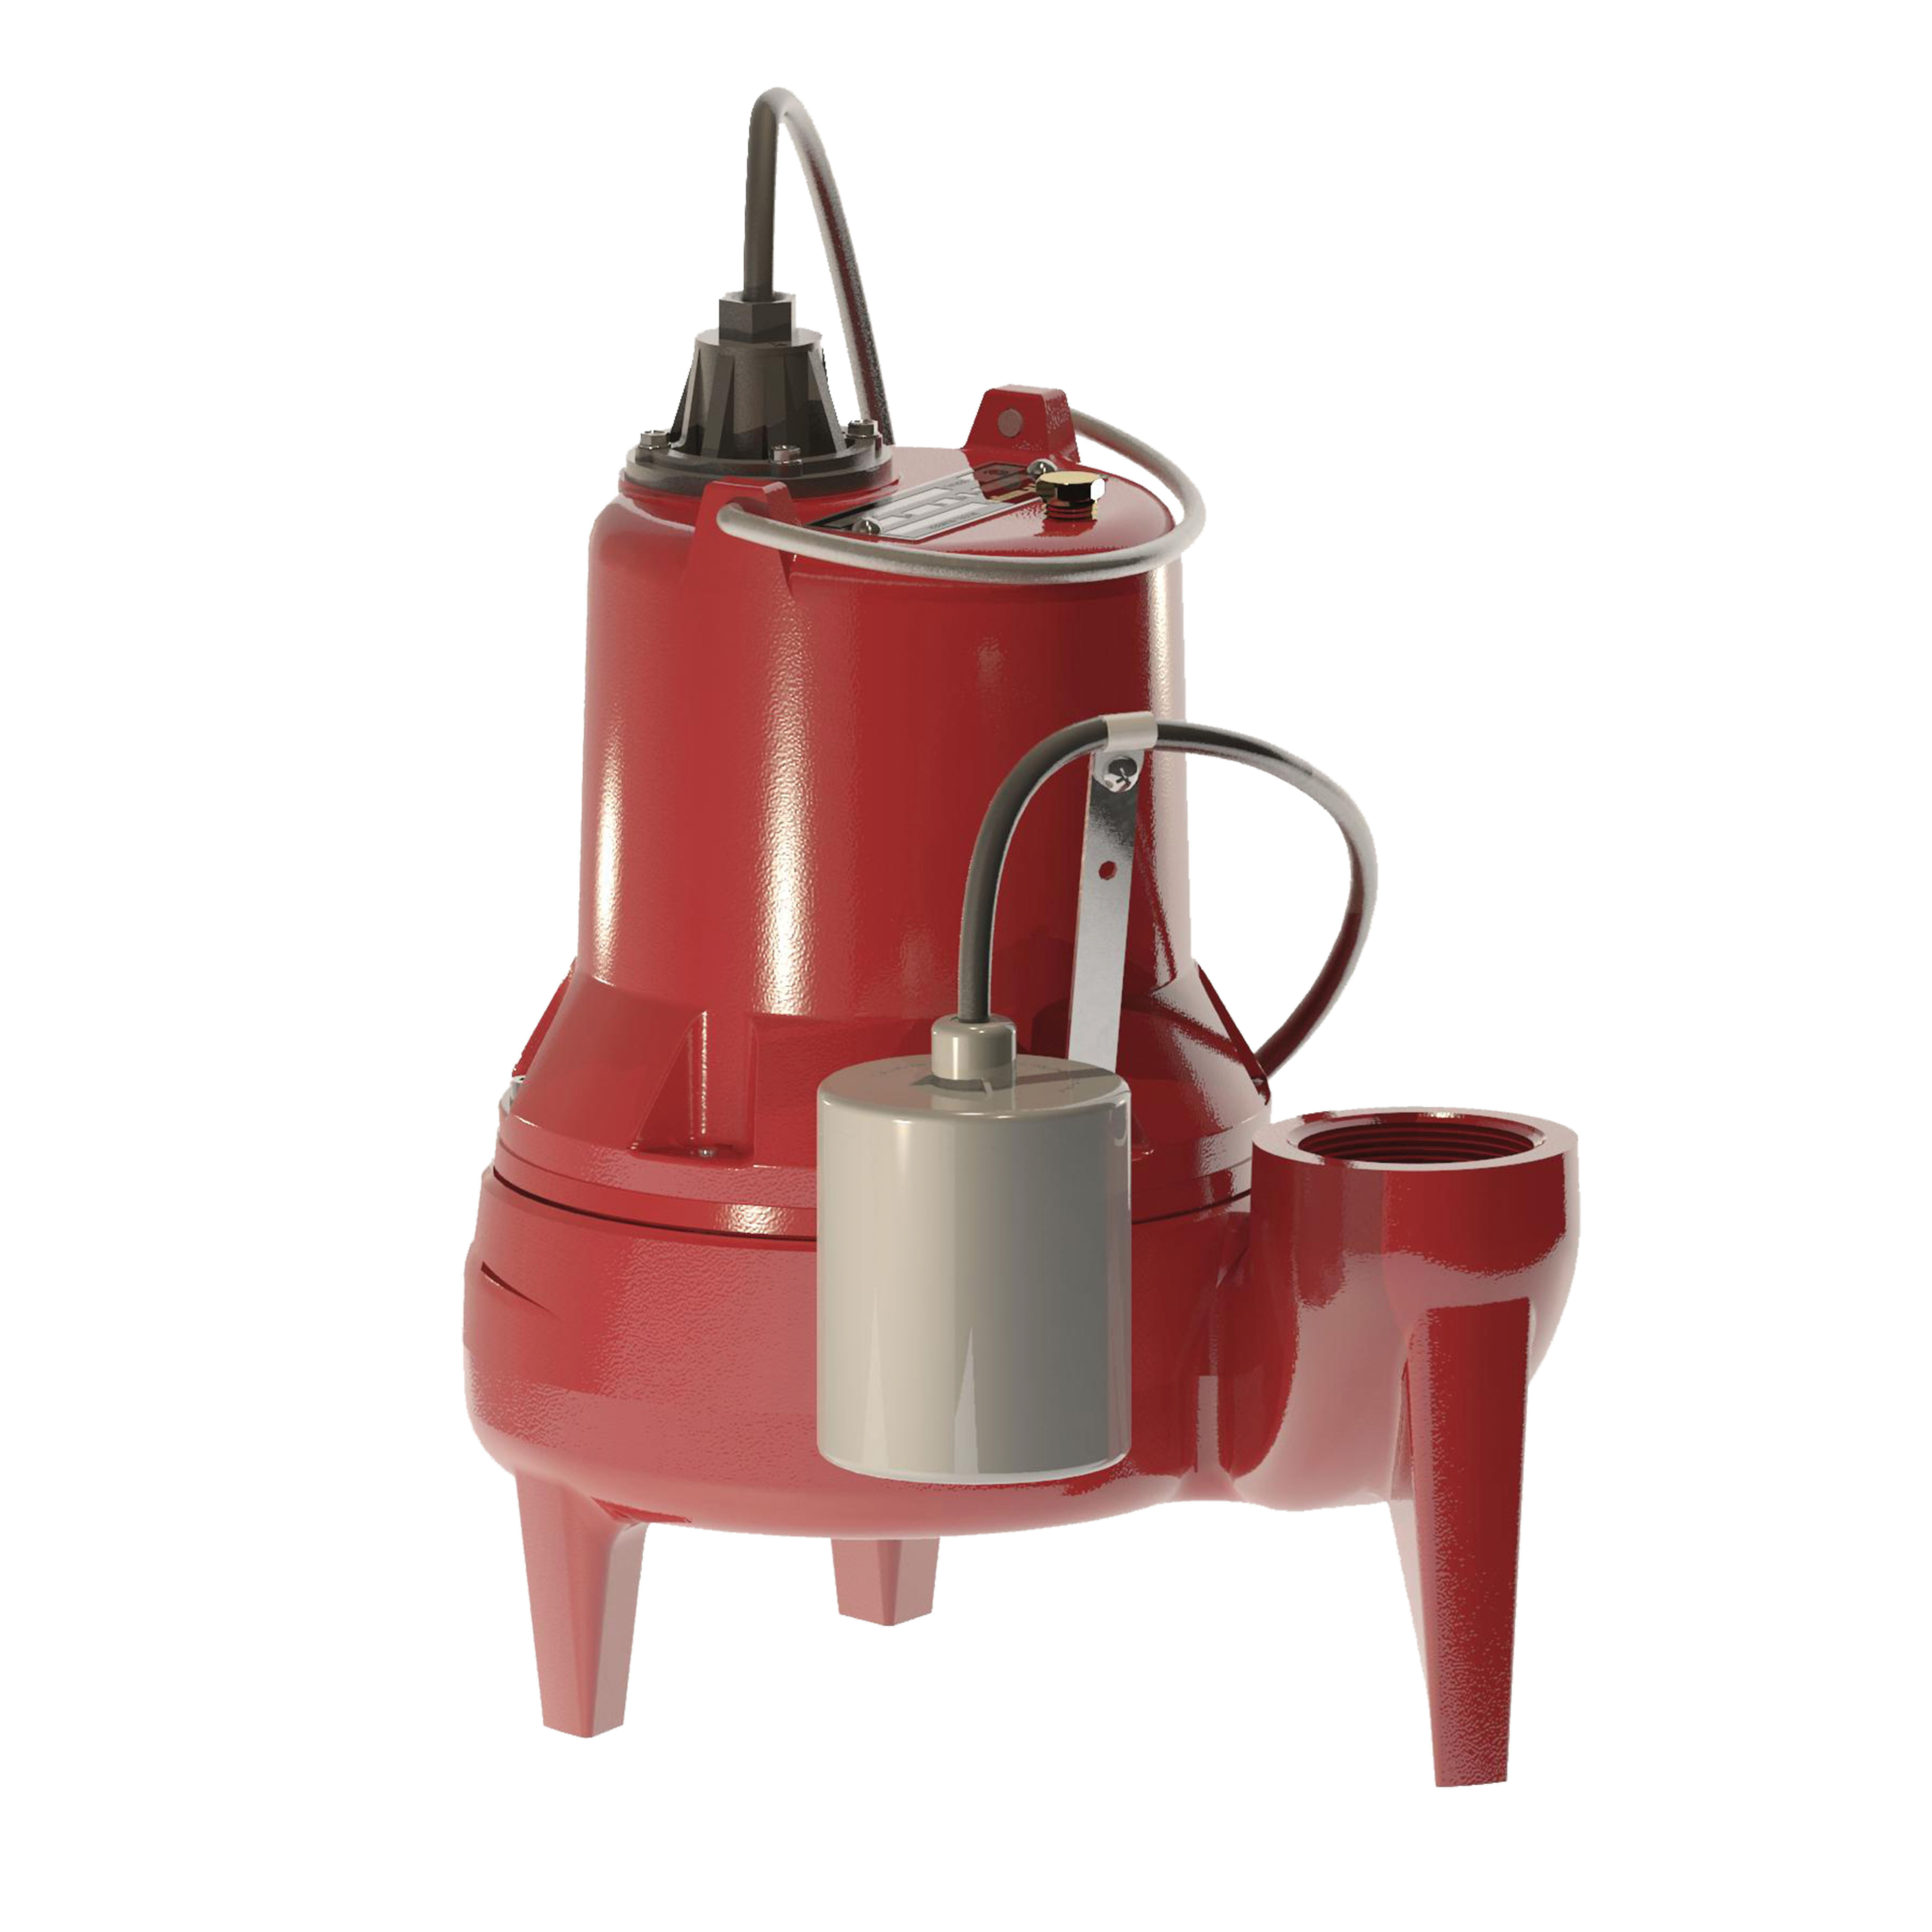 Liberty Pumps® LE41A Automatic Submersible Sewage Pump, 4/10 hp, 115 VAC, 2 in FNPT Outlet, Cast Iron, 12 A Full Load/22.5 A Locked Rotor, 1 ph